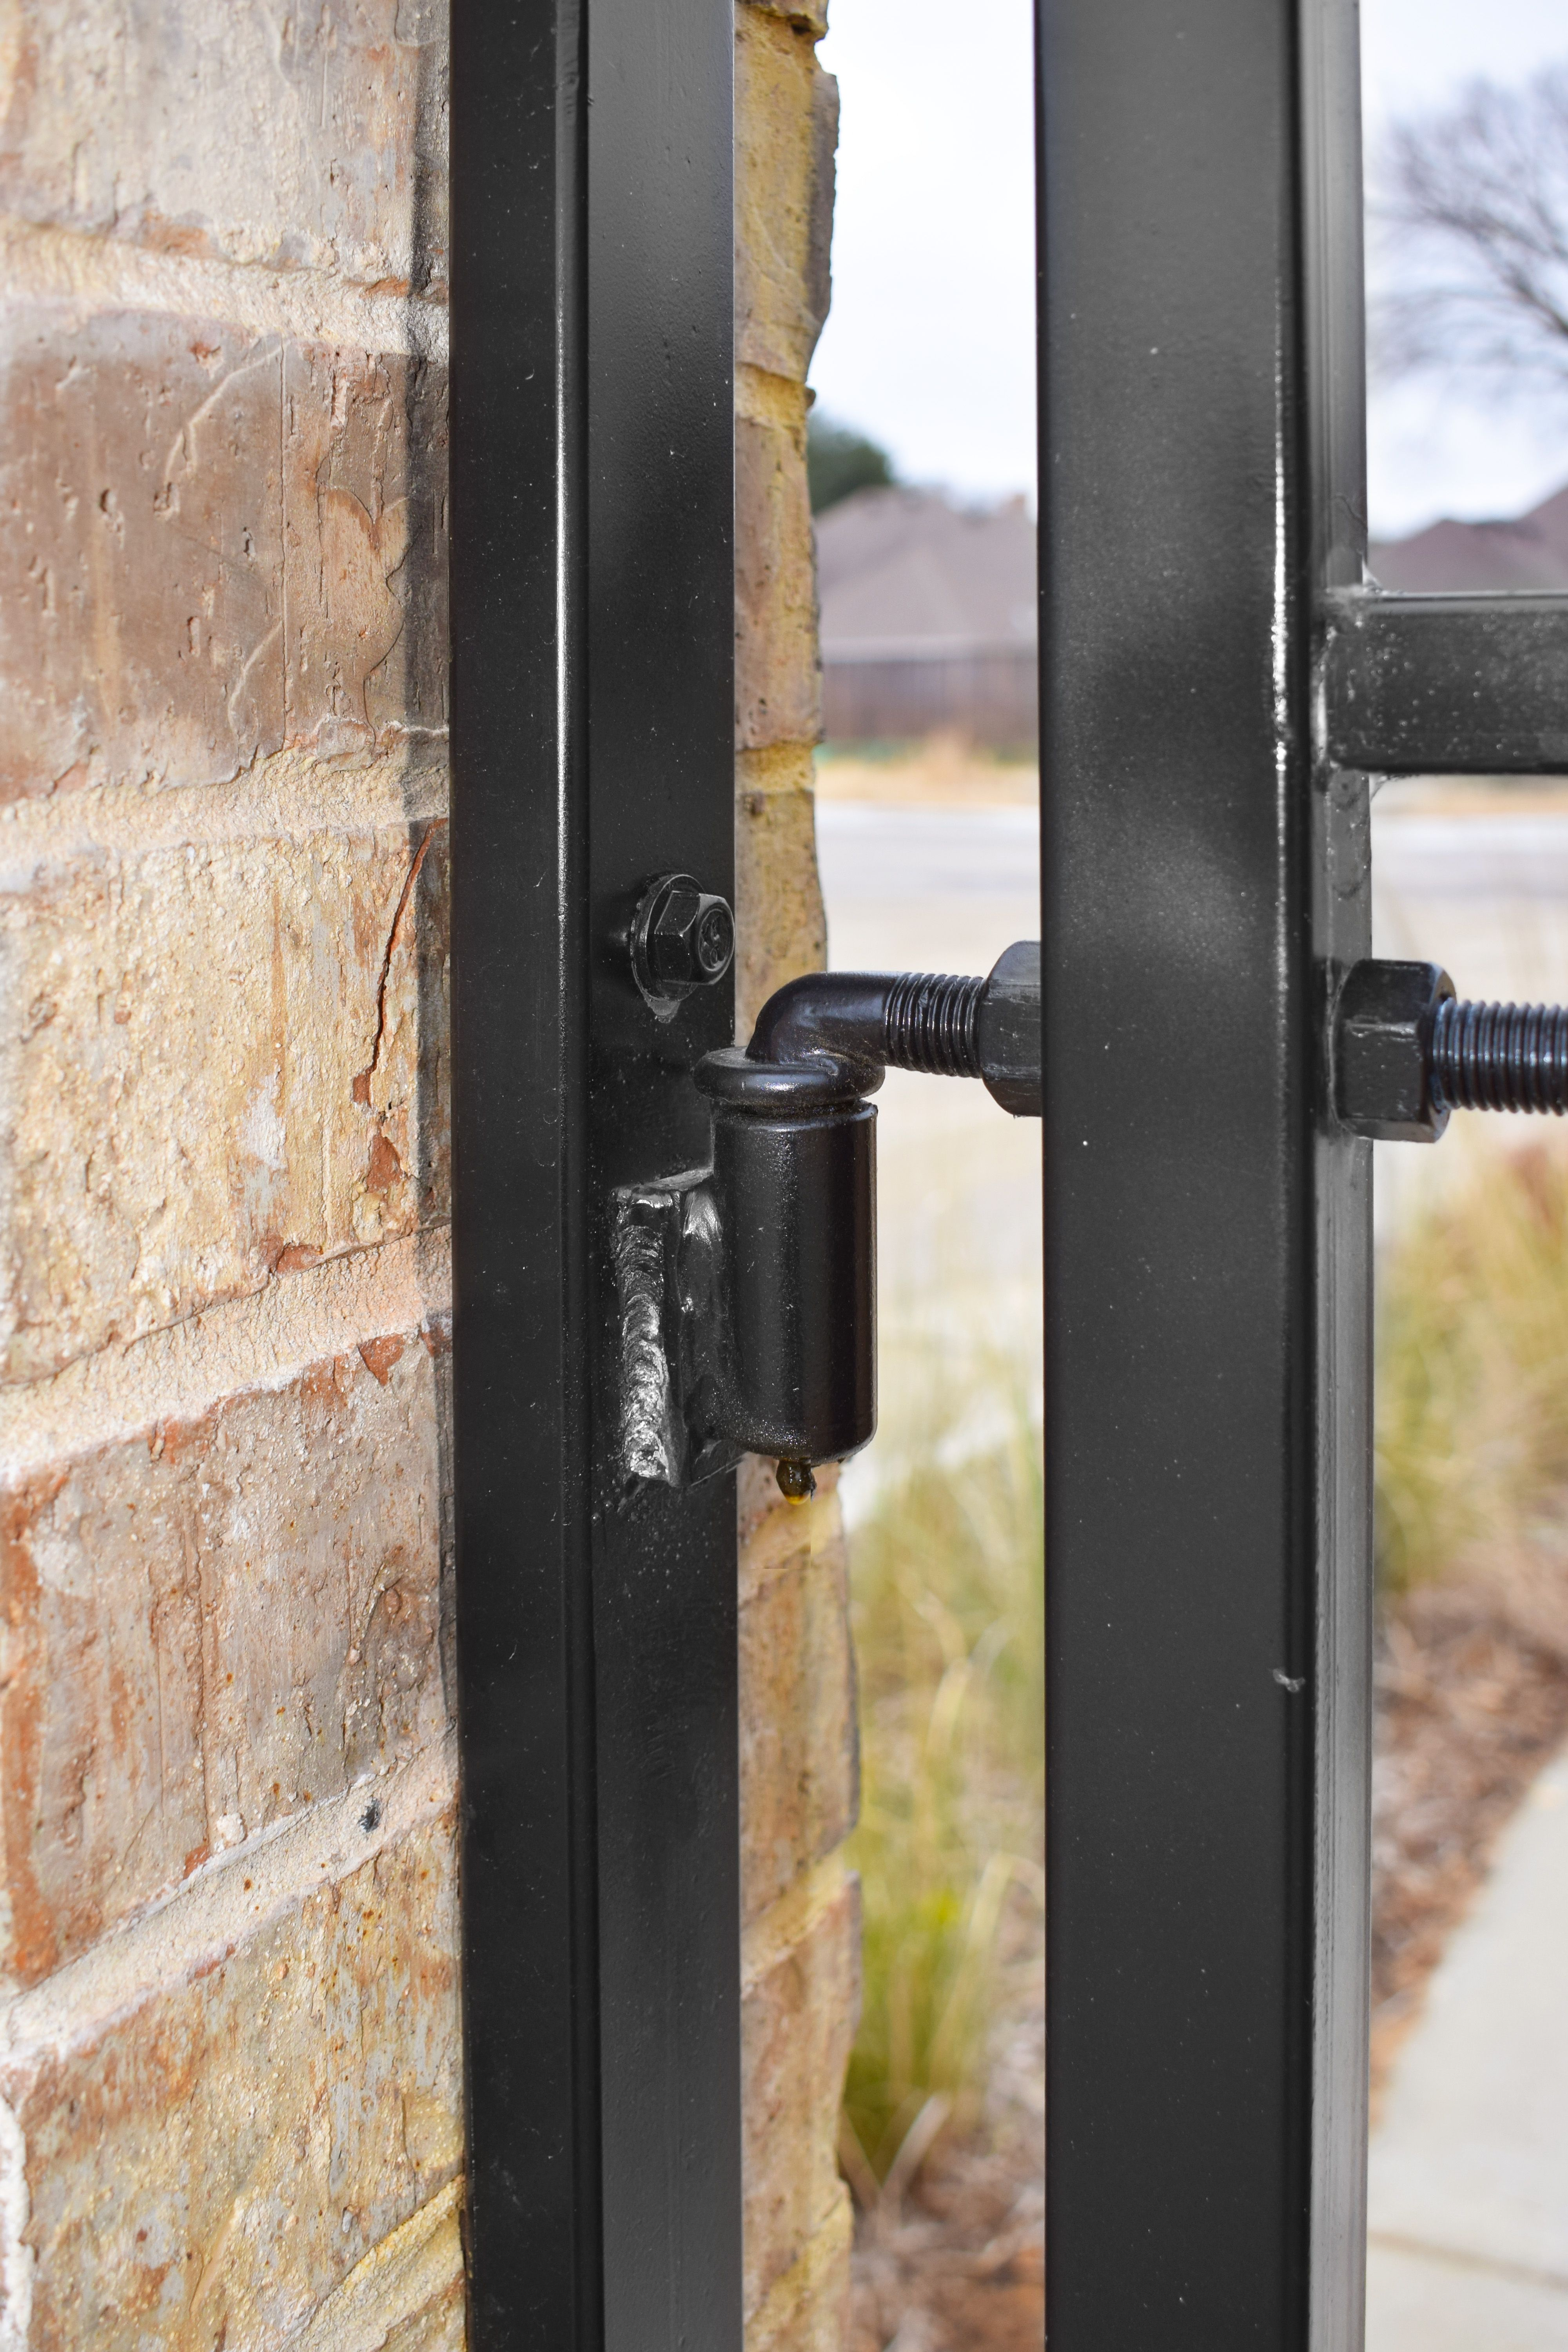 The Unsung Hero Of Every Gate Is The Hinge On Which It Relies On This One Is Item Number 44 2003 Adj Barrel Hinges Hinges Barrel